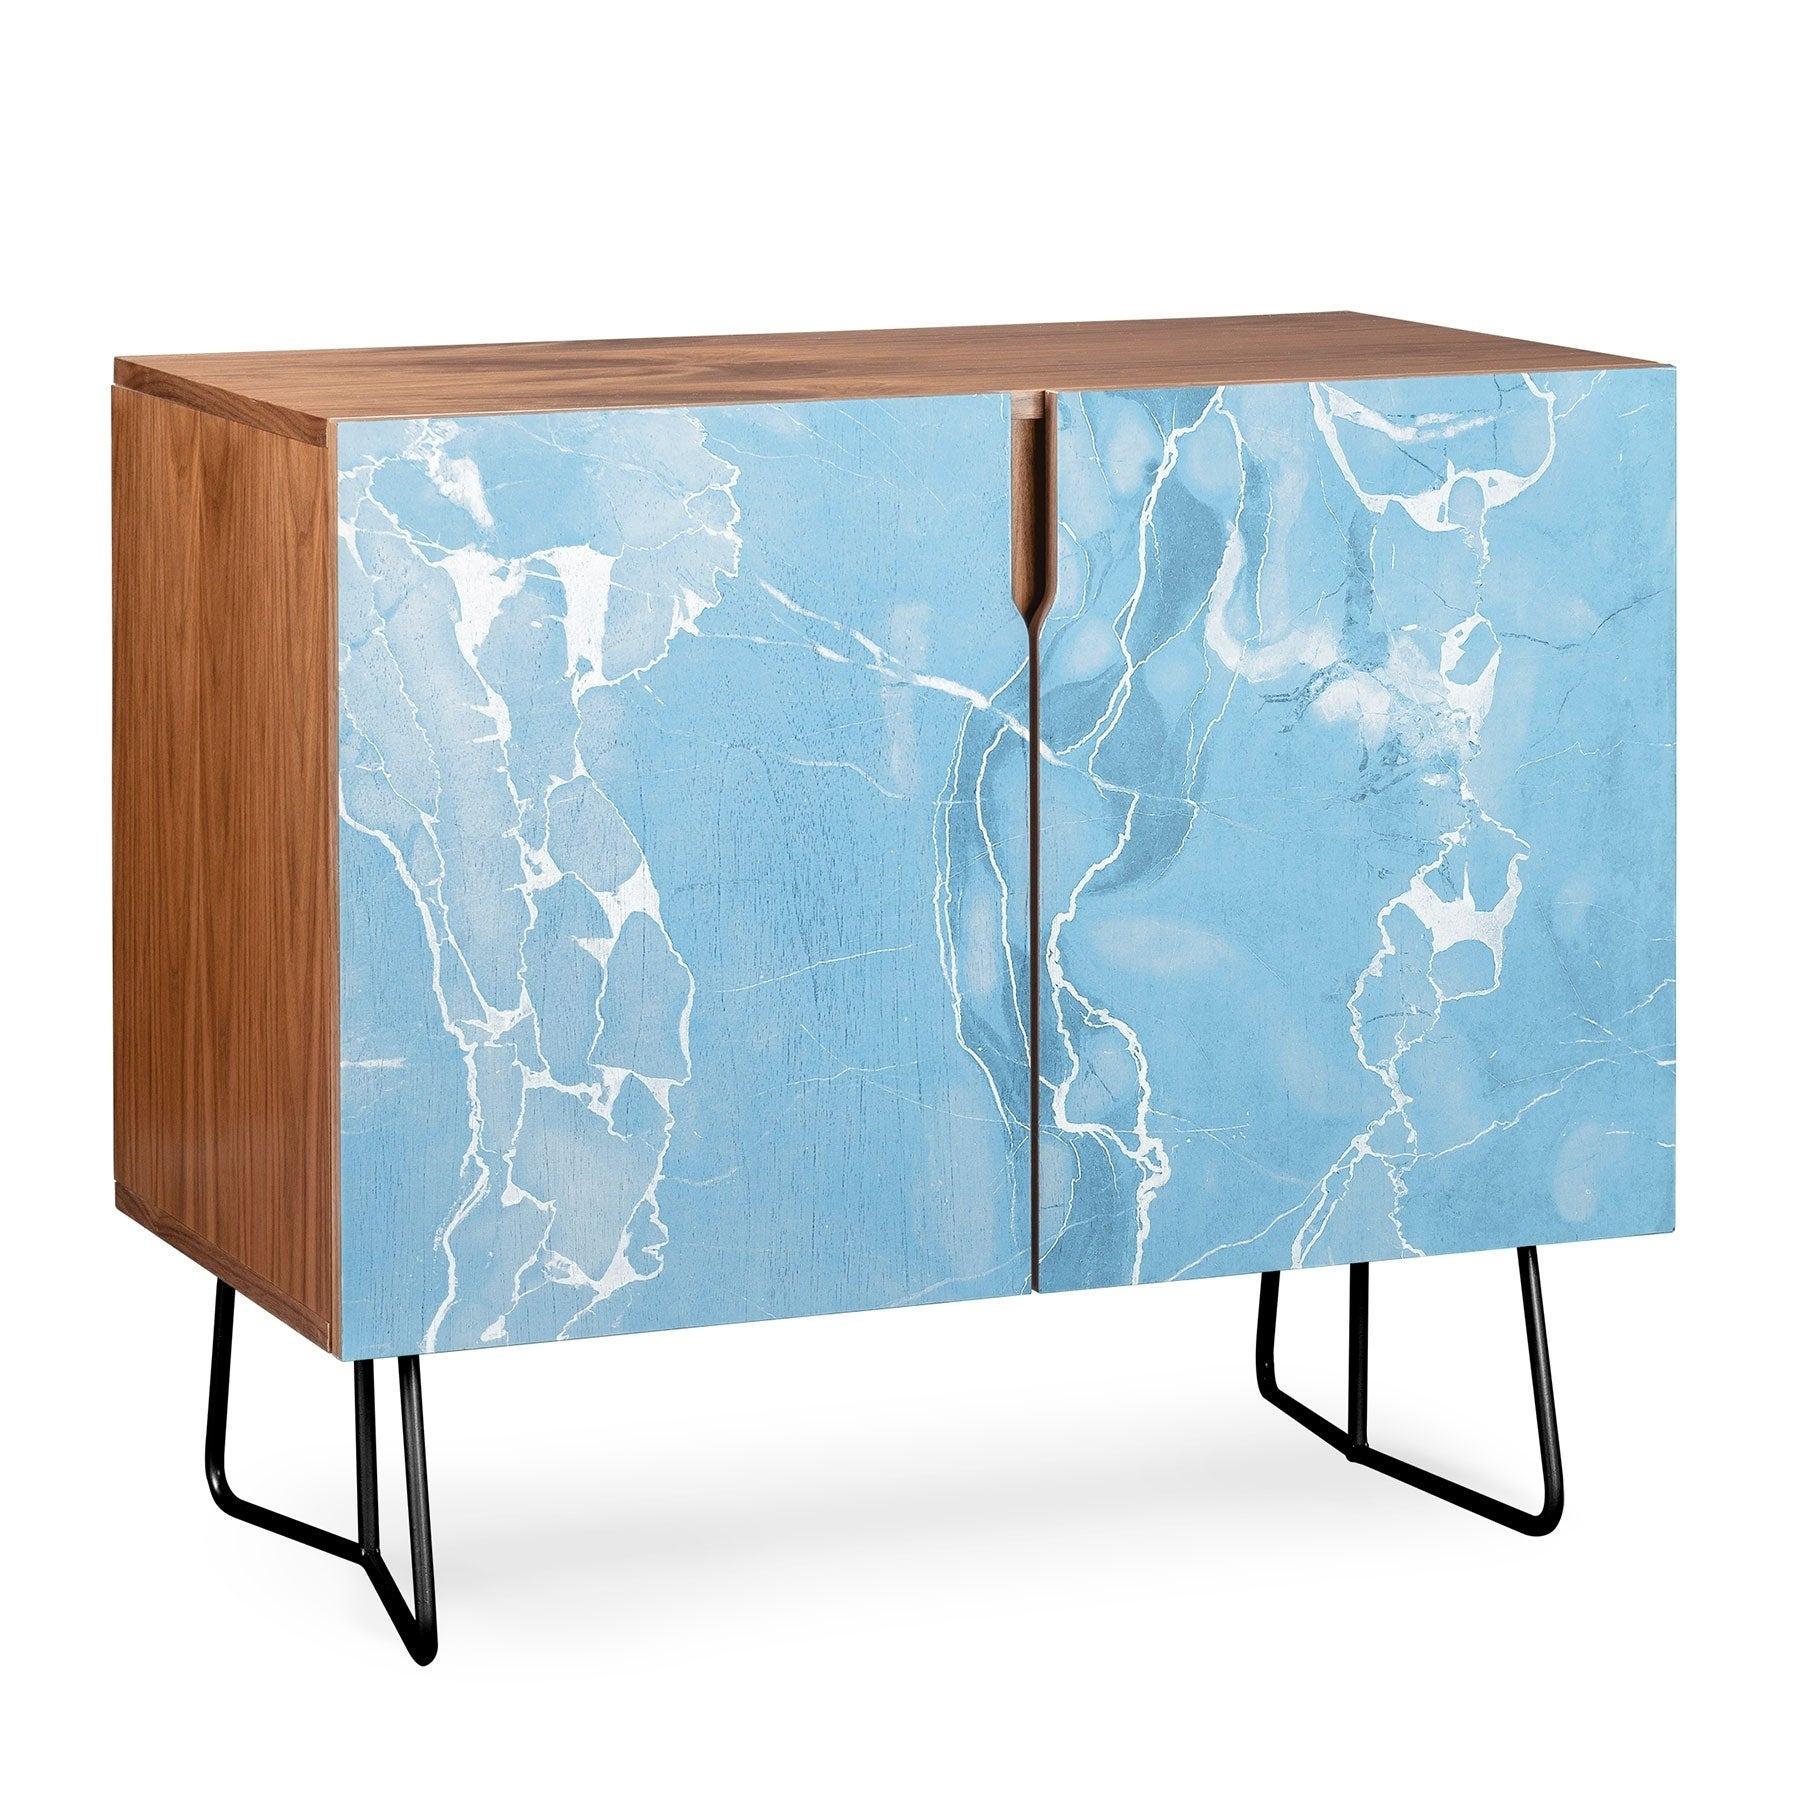 Deny Designs Blue Sky Marble Credenza (Birch Or Walnut, 2 Leg Options) Intended For Ocean Marble Credenzas (Gallery 3 of 30)